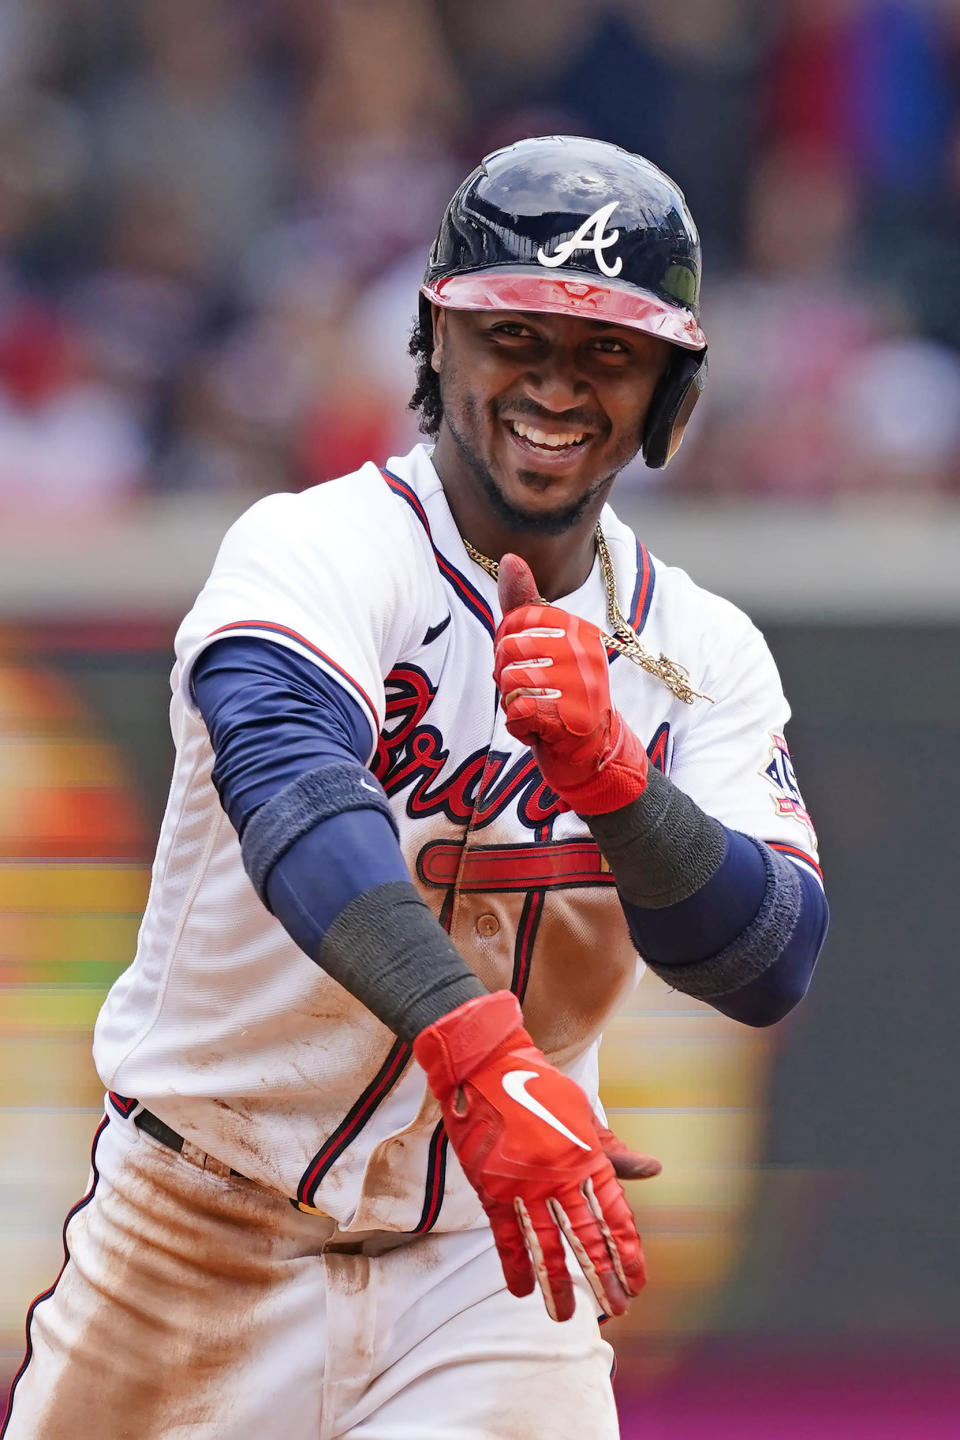 Atlanta Braves' Ozzie Albies (1) reacts after driving in a run with a double in the seventh inning of a baseball game against the Washington Nationals, Thursday, June 3, 2021, in Atlanta. (AP Photo/John Bazemore)